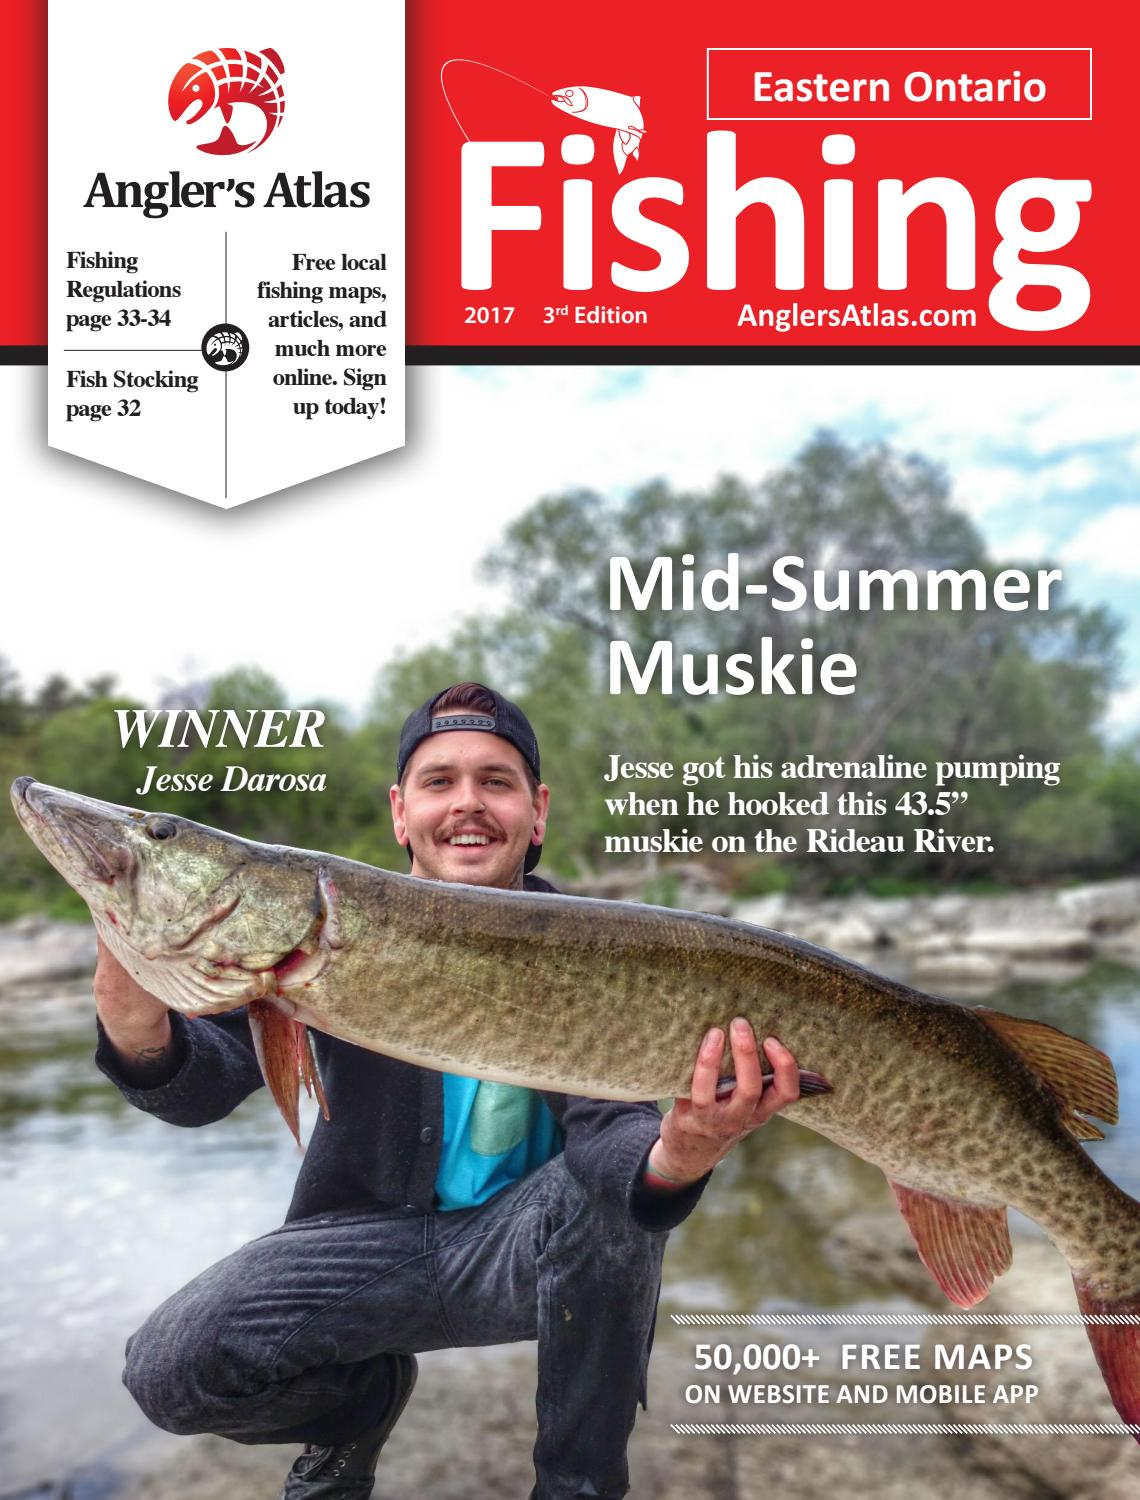 Eastern ontario fishing 2017 by angler 39 s atlas issuu for California fishing license 2017